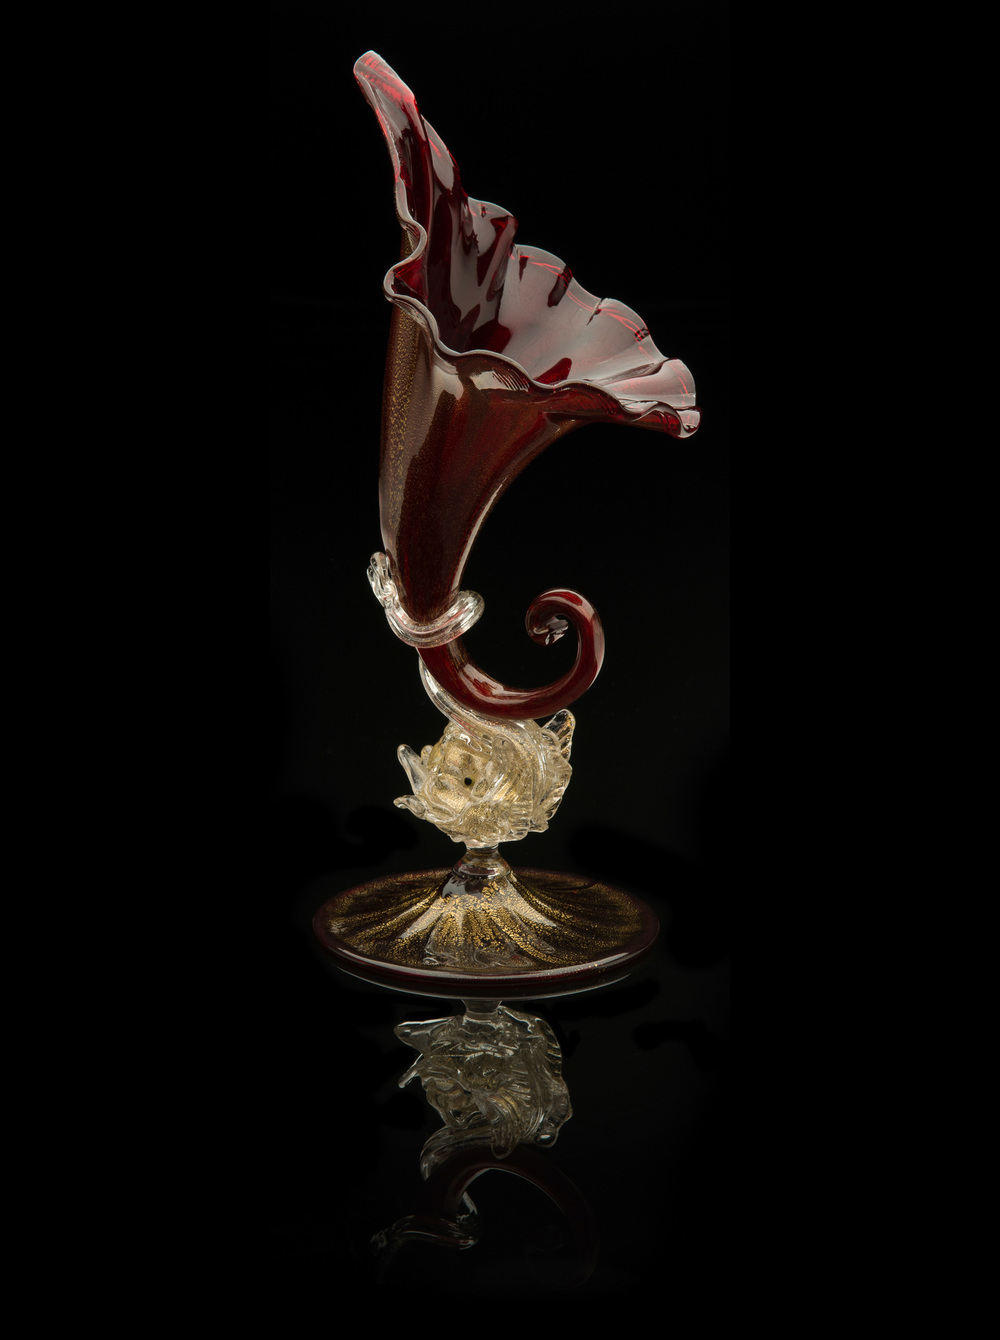 Salviati and Company,  Ruby Red Venetian Horn of Plenty with Dolphin Stem and Twisted Tail  (1864-1870, glass, 11 1/2 x 4 1/2 inches), VV.524